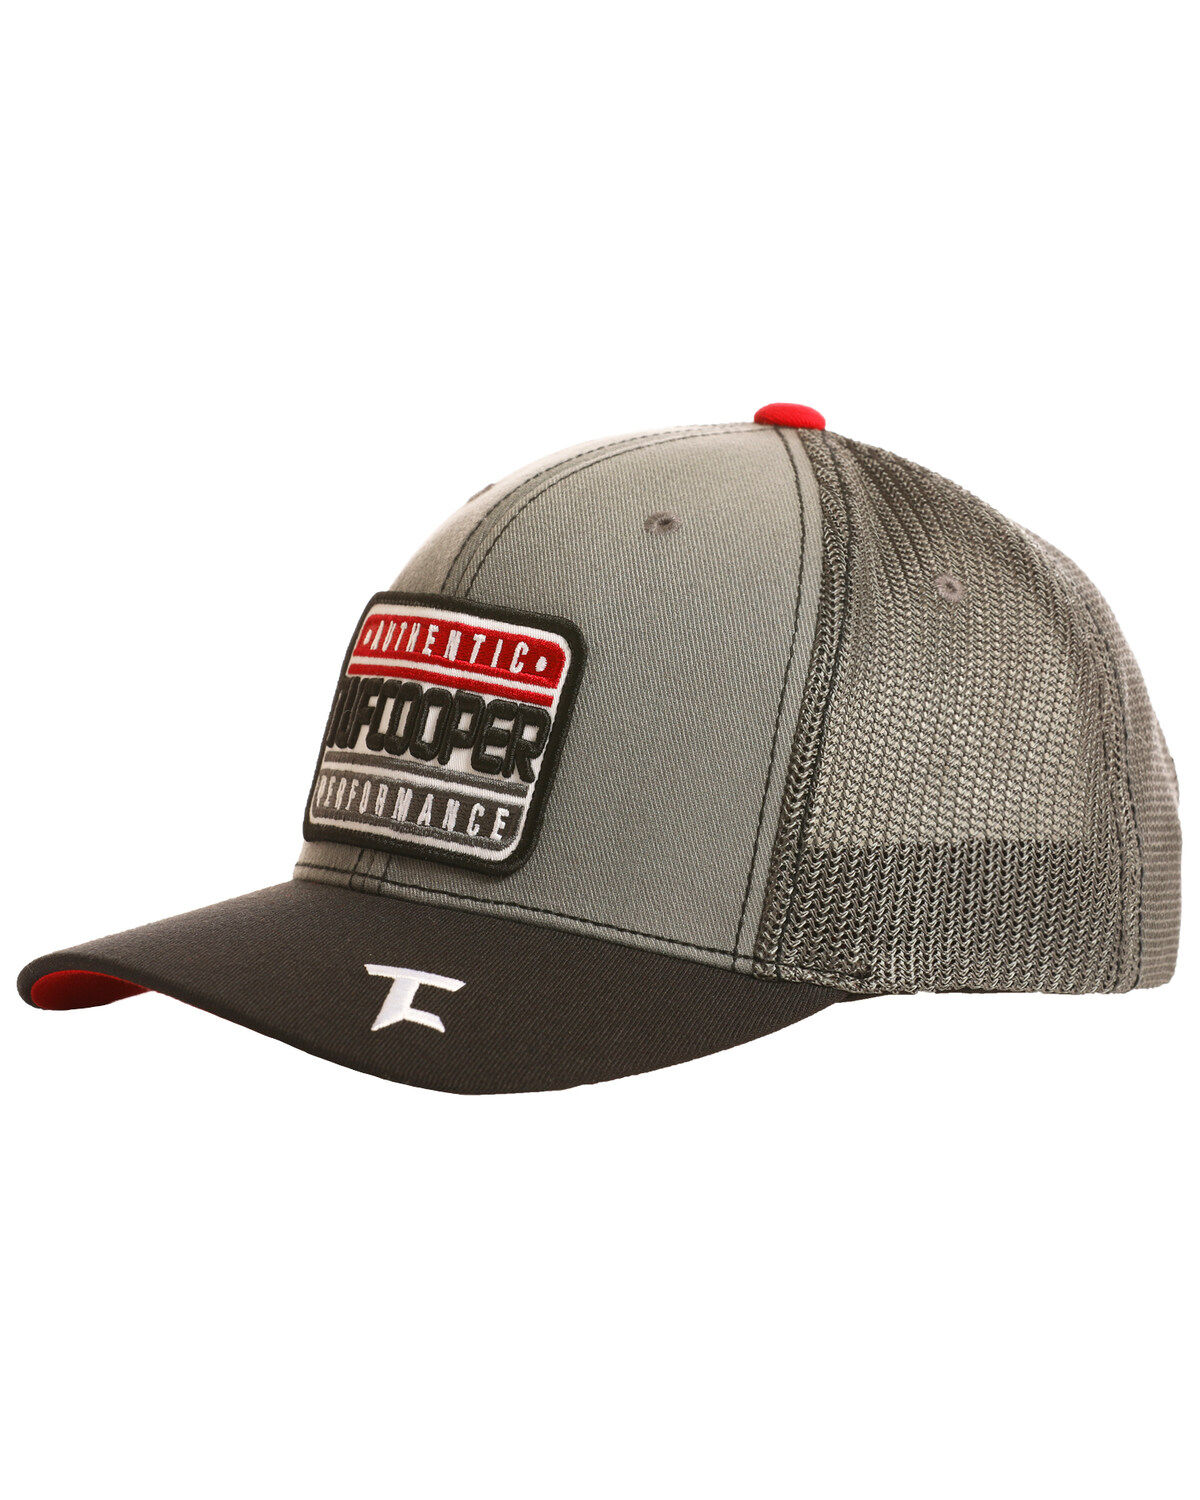 detailed pictures 573d5 1b1fa ... usa tuf cooper mens performance patch mesh ball cap ab643 77227